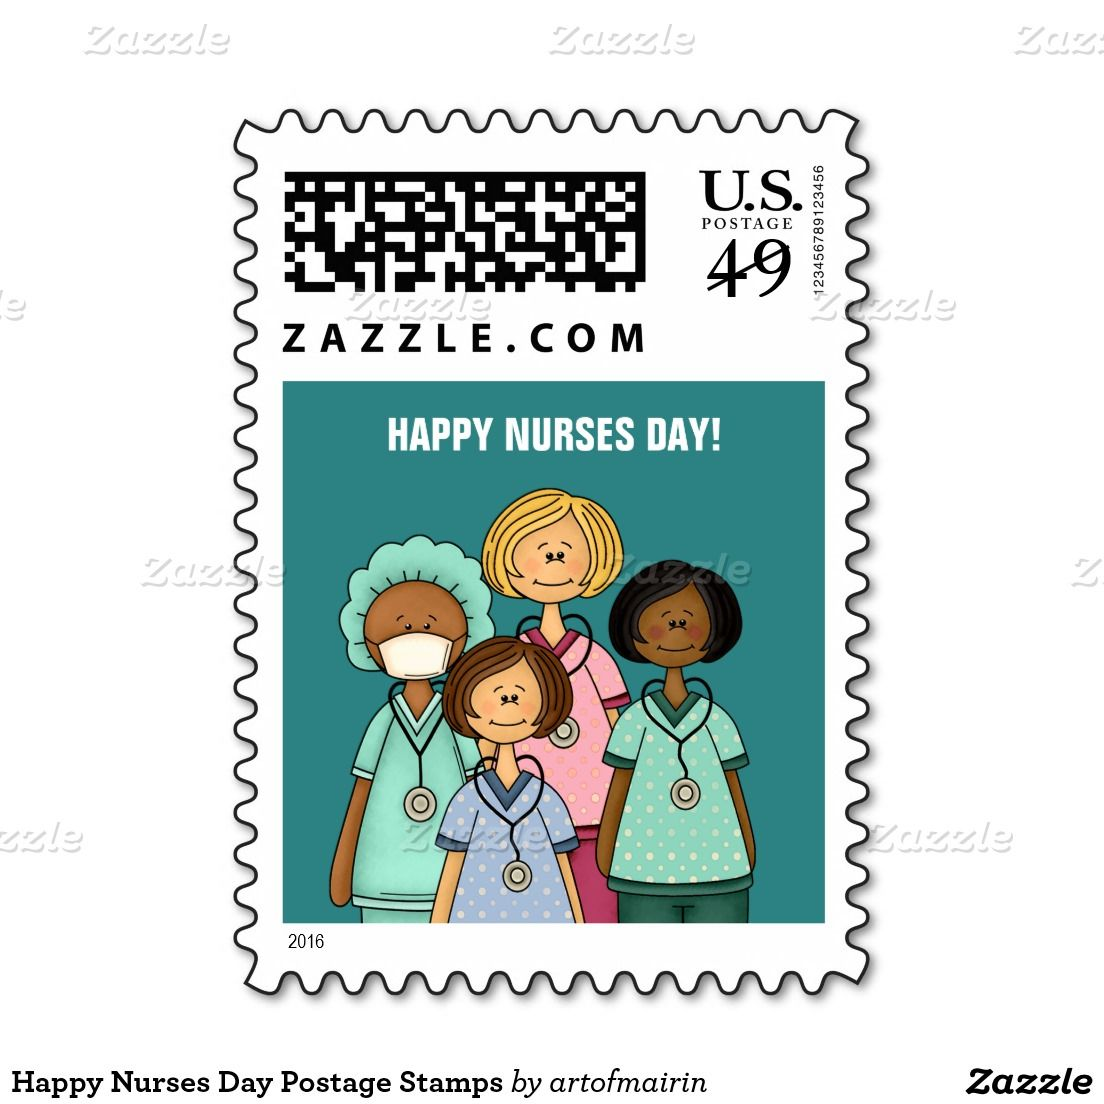 Happy Nurses Day Postage Stamps. Matching Cards in various languages , postage stamps and other products available in the Business Related Holidays / Healthcare Category of the artofmairin store at zazzle.com